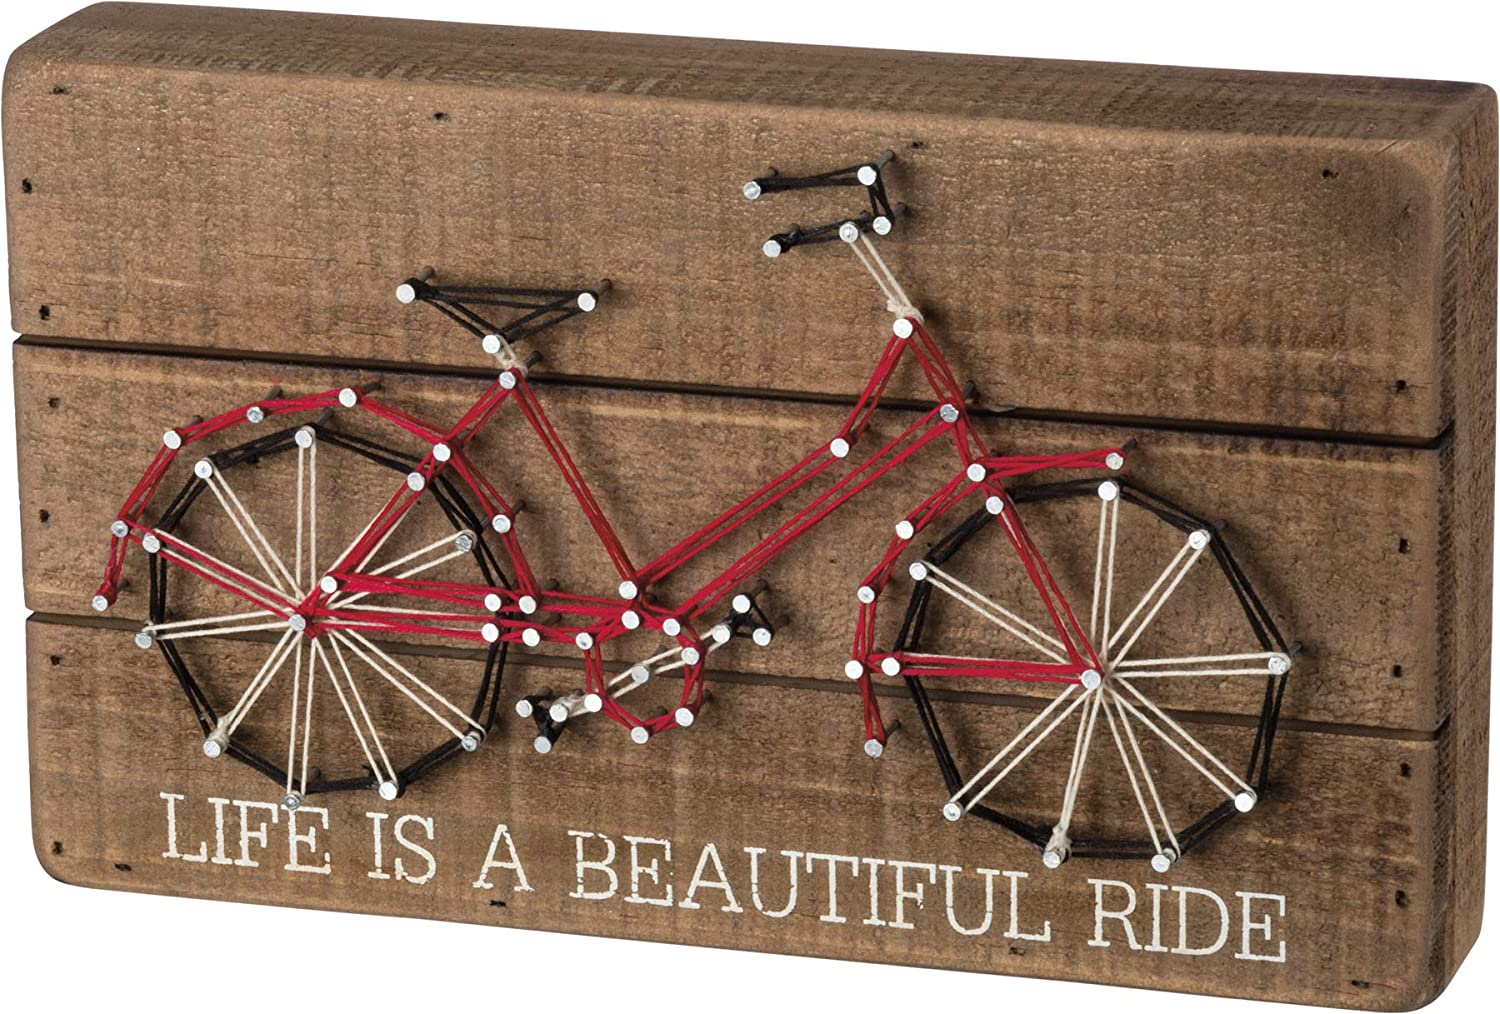 Primitives by Kathy 36354 String Art Wood Box Sign, 10 x 6-Inches, Life is A Beautiful Ride